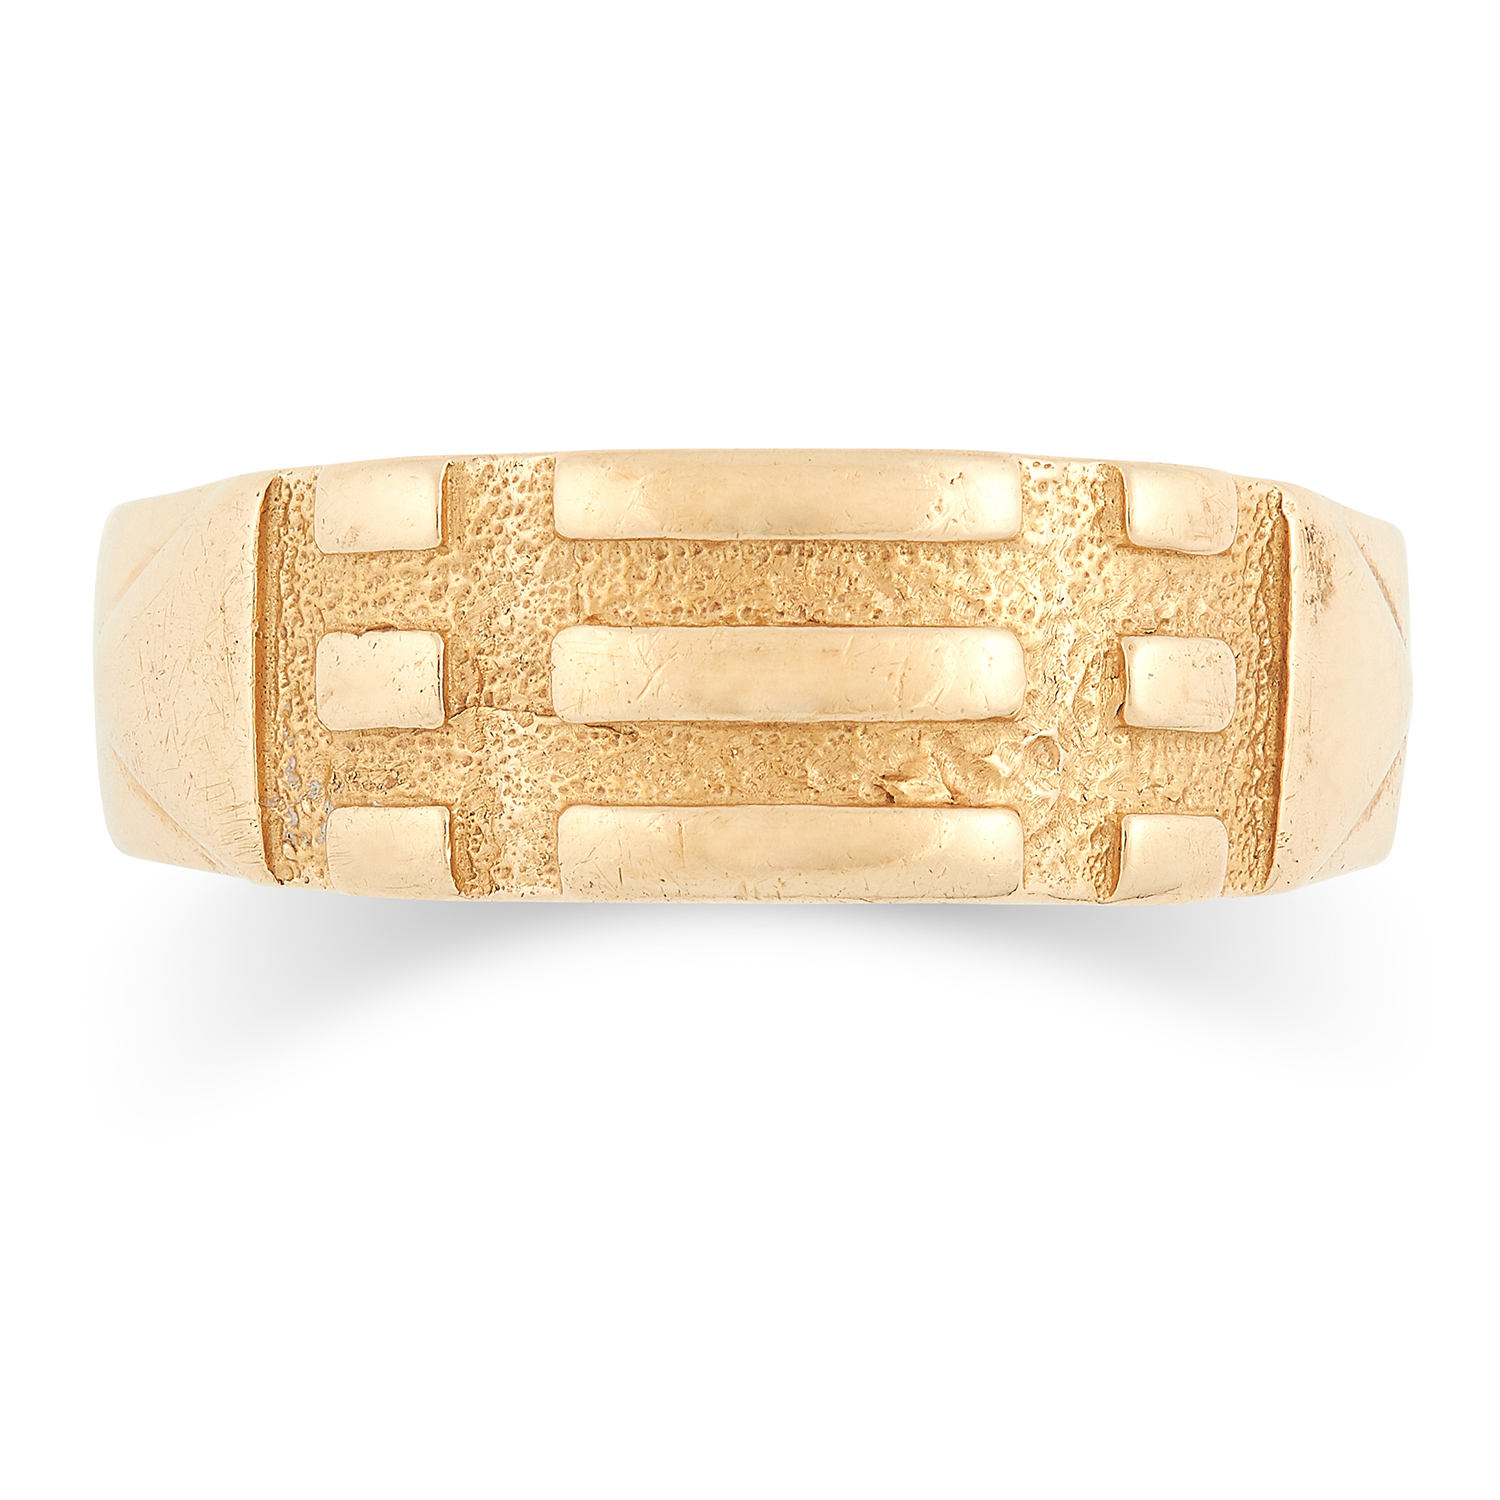 Los 41 - ENGRAVED WEDDING BAND with the phrase 'CARPEDIEM - MAMA' engraved, size W / 11, 4.7g.